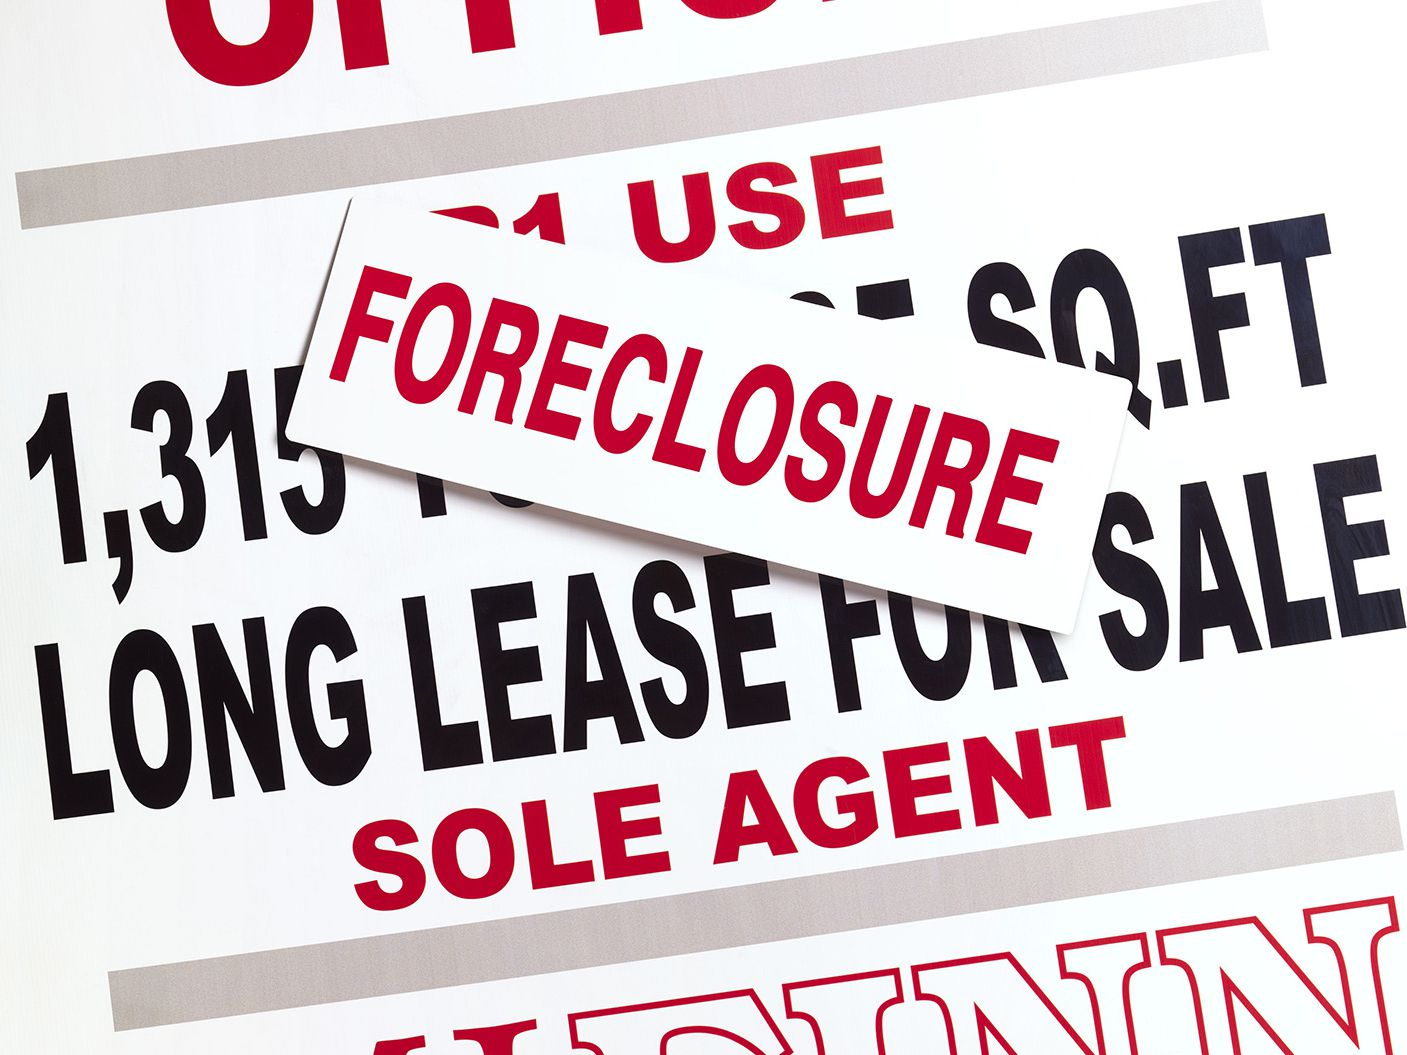 Overview of Foreclosures on Business Property